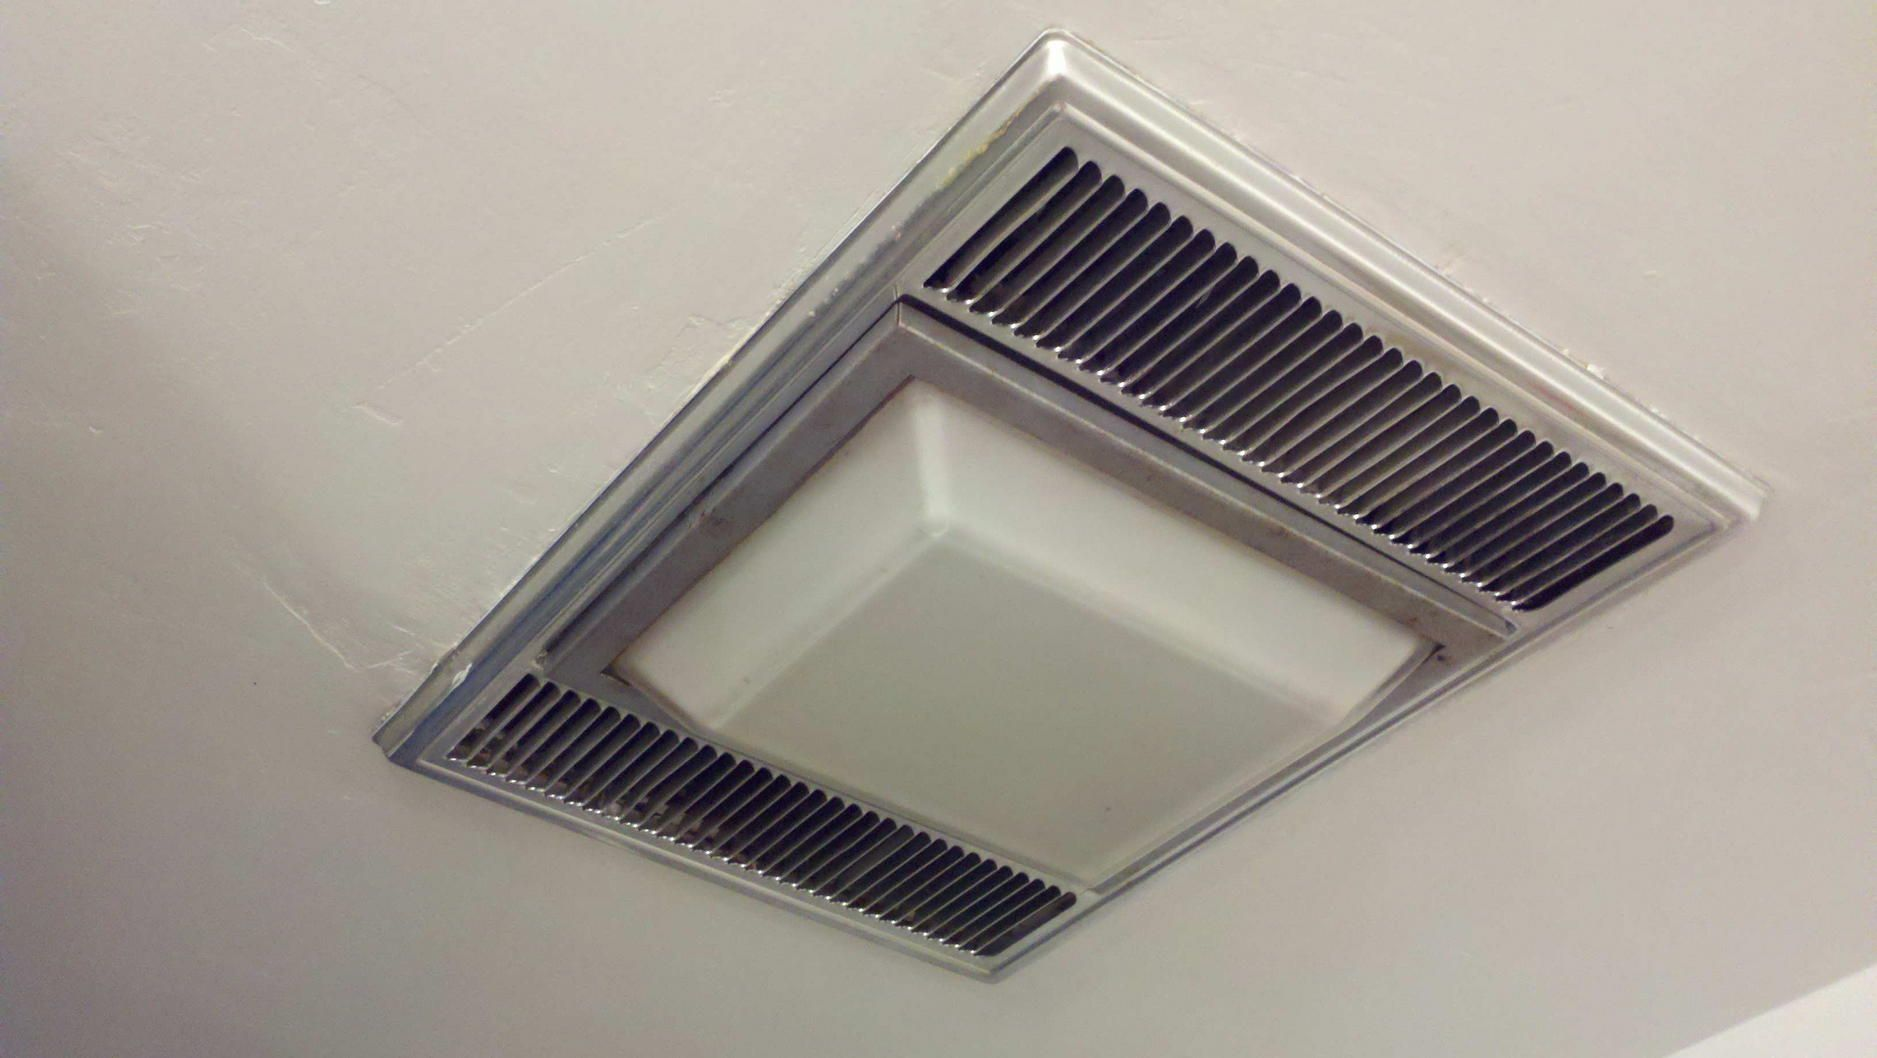 Bathroom extractor fan with led light - Bathroom Exhaust Fan Light Replacement Cover